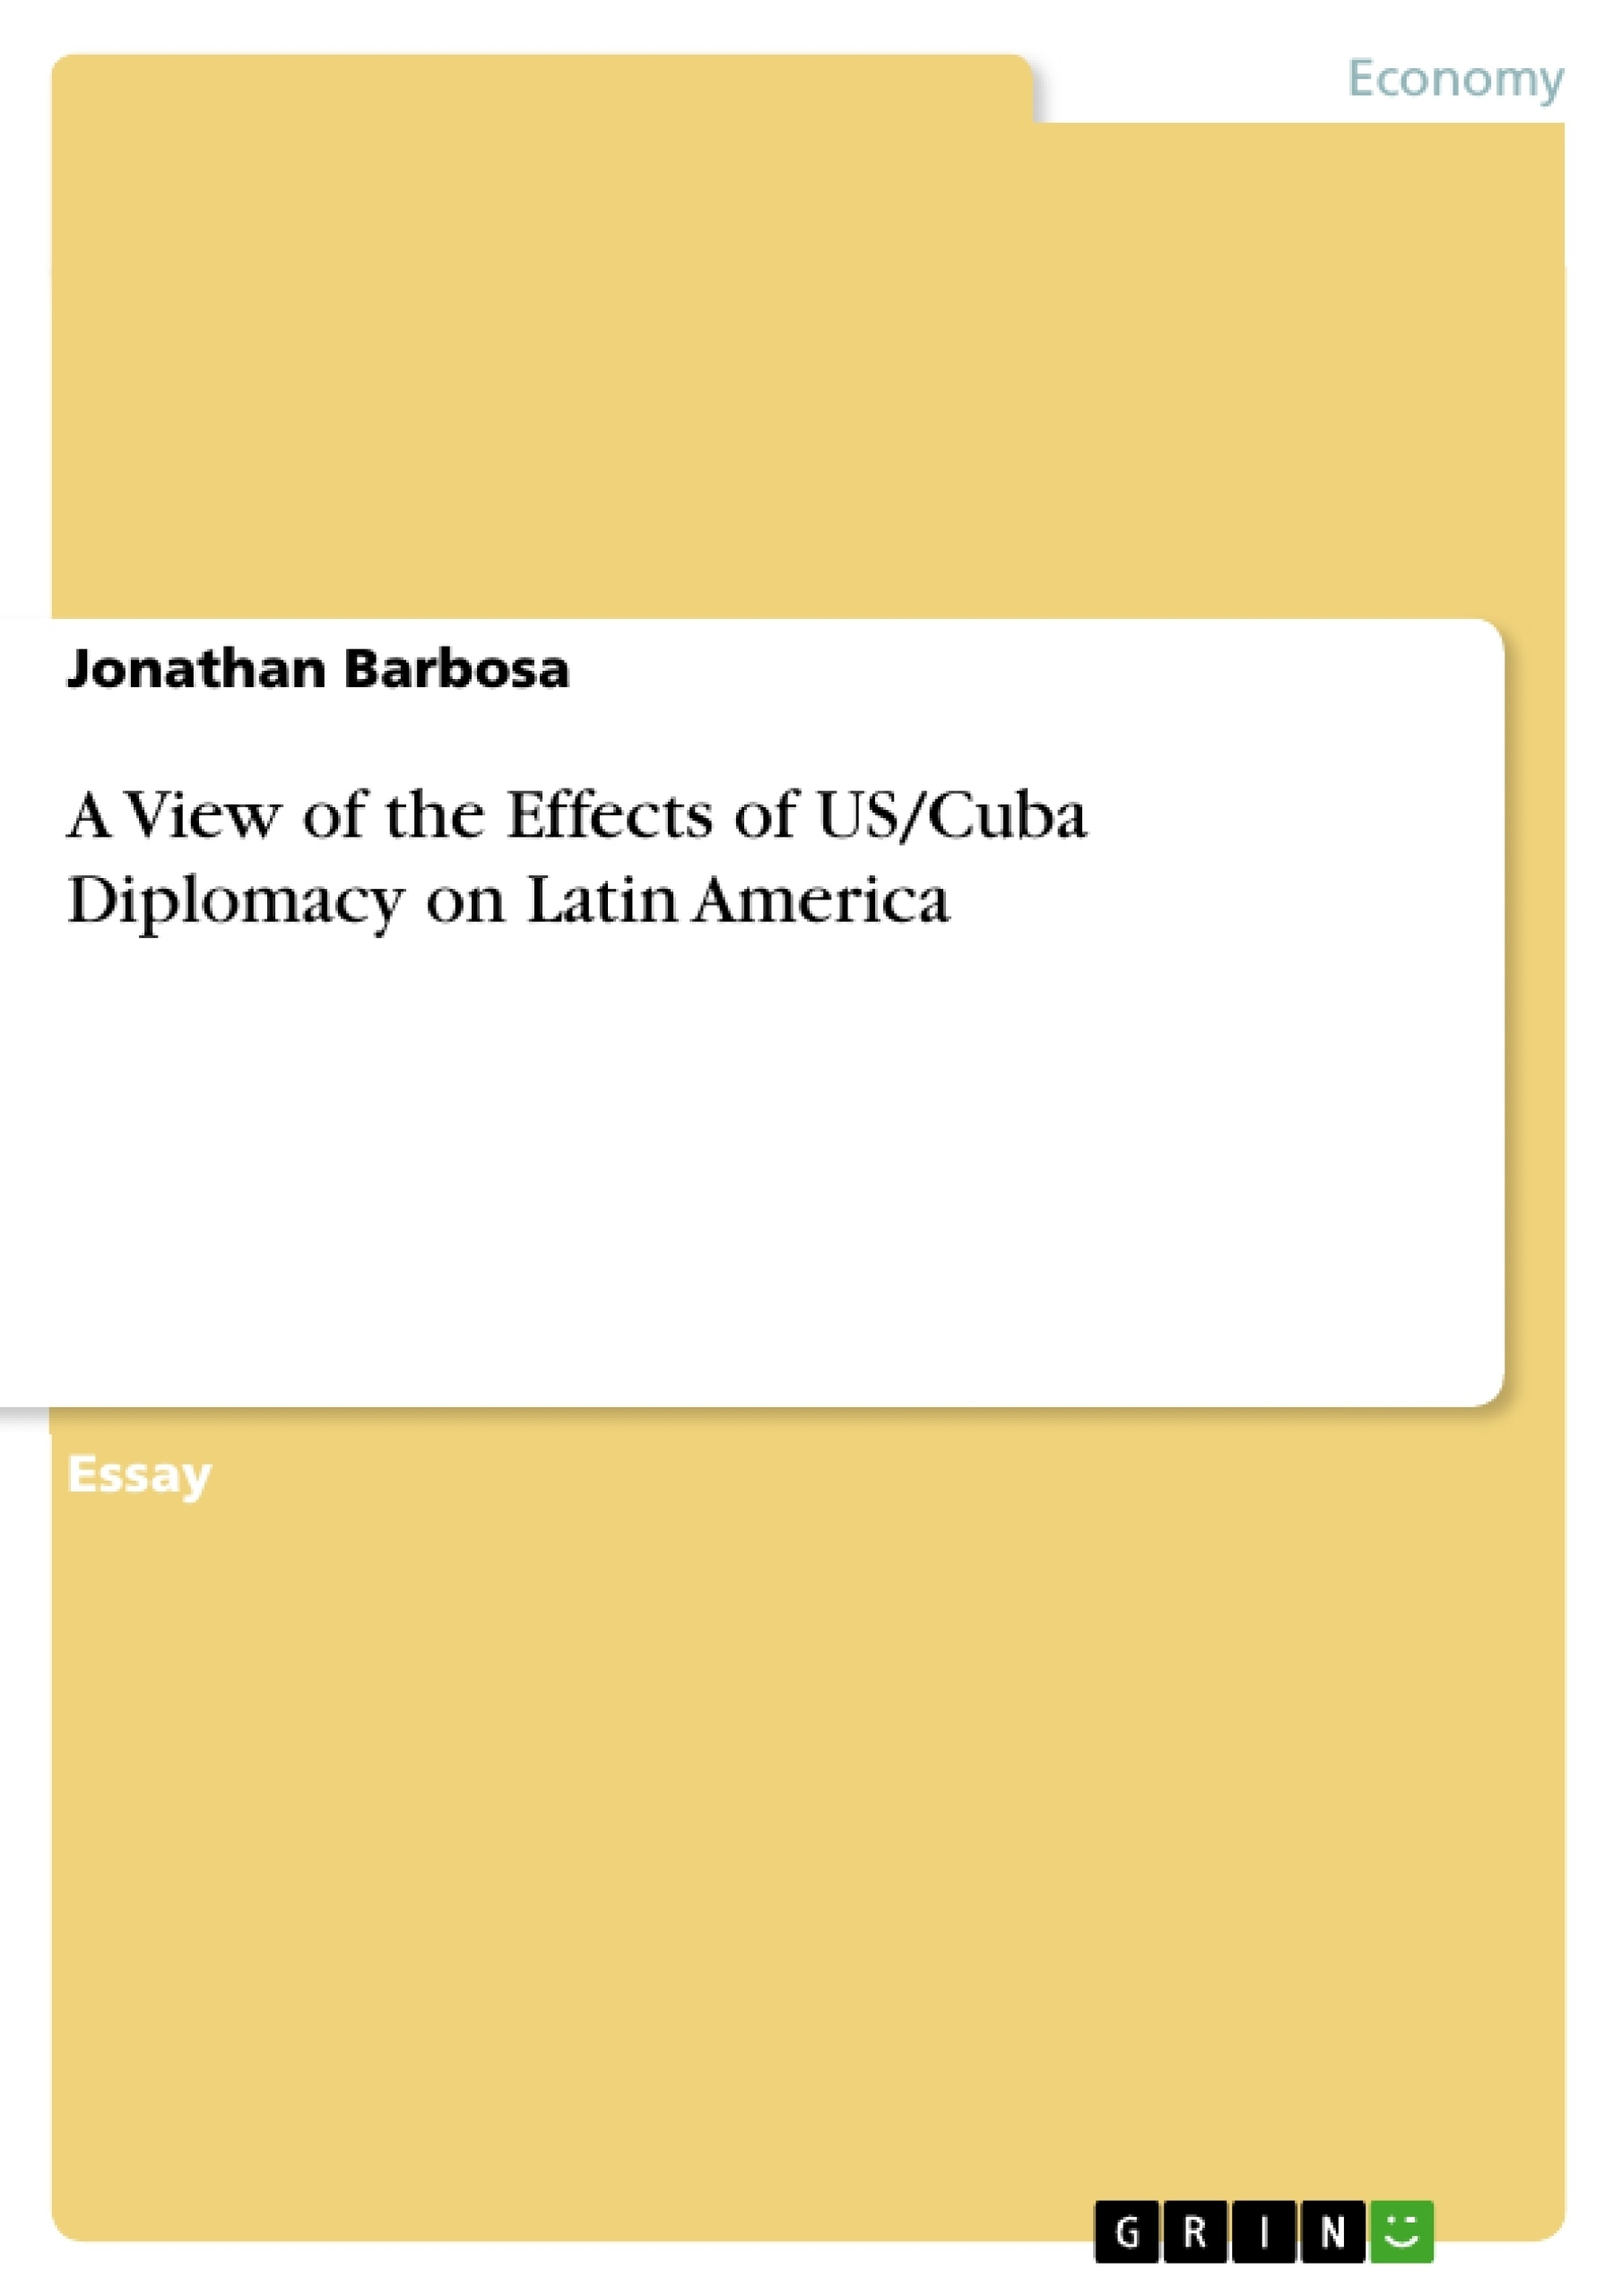 a view of the effects of us diplomacy on latin america  upload your own papers earn money and win an iphone x